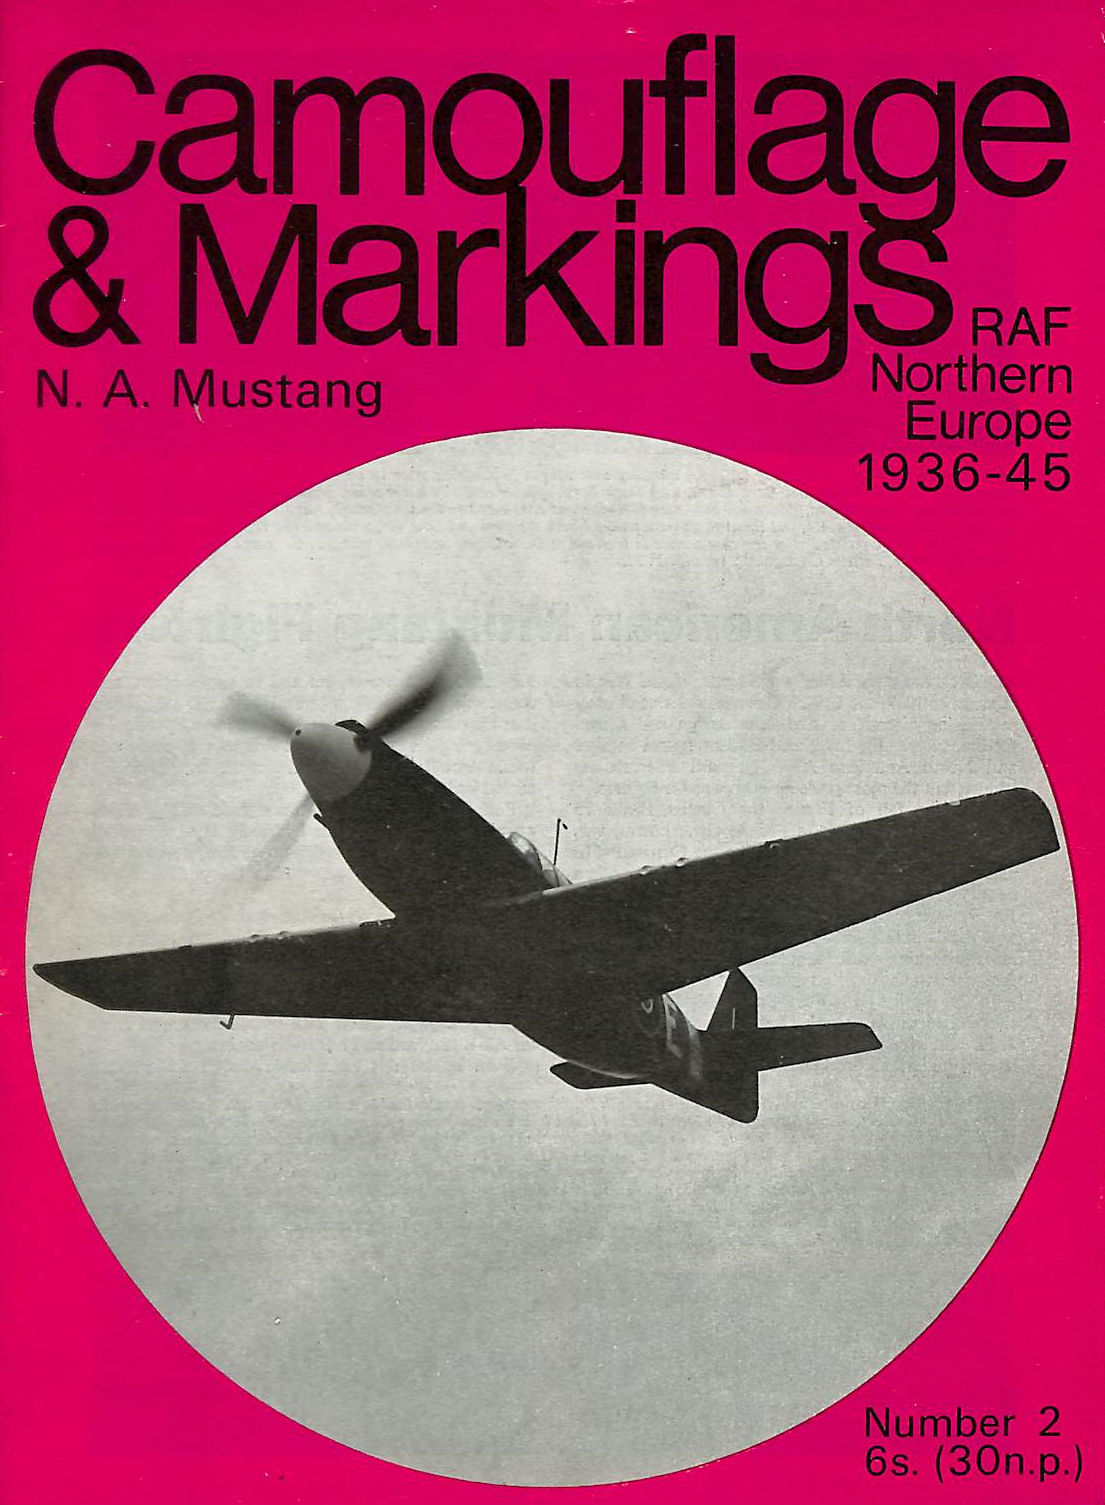 Image for P-51 MUSTANG, RAF CAMOUFLAGE & MARKINGS, Northern Europe 1936-45.